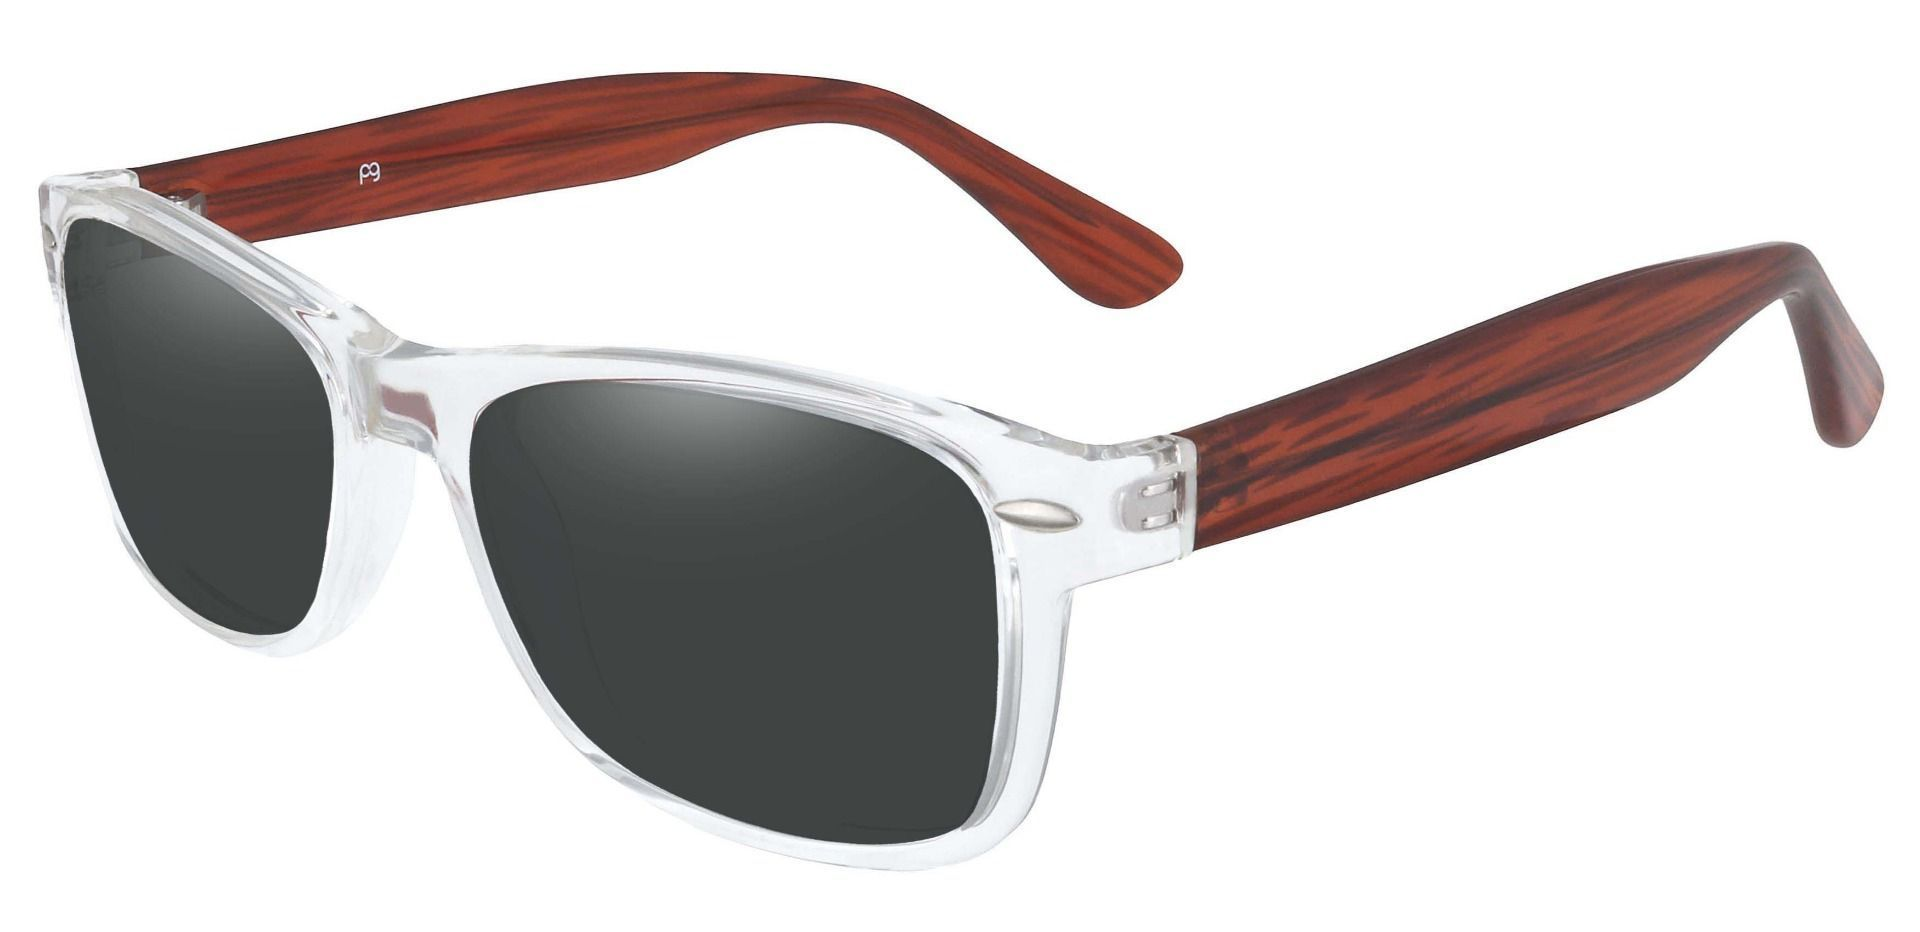 Kent Rectangle Lined Bifocal Sunglasses - Clear Frame With Gray Lenses